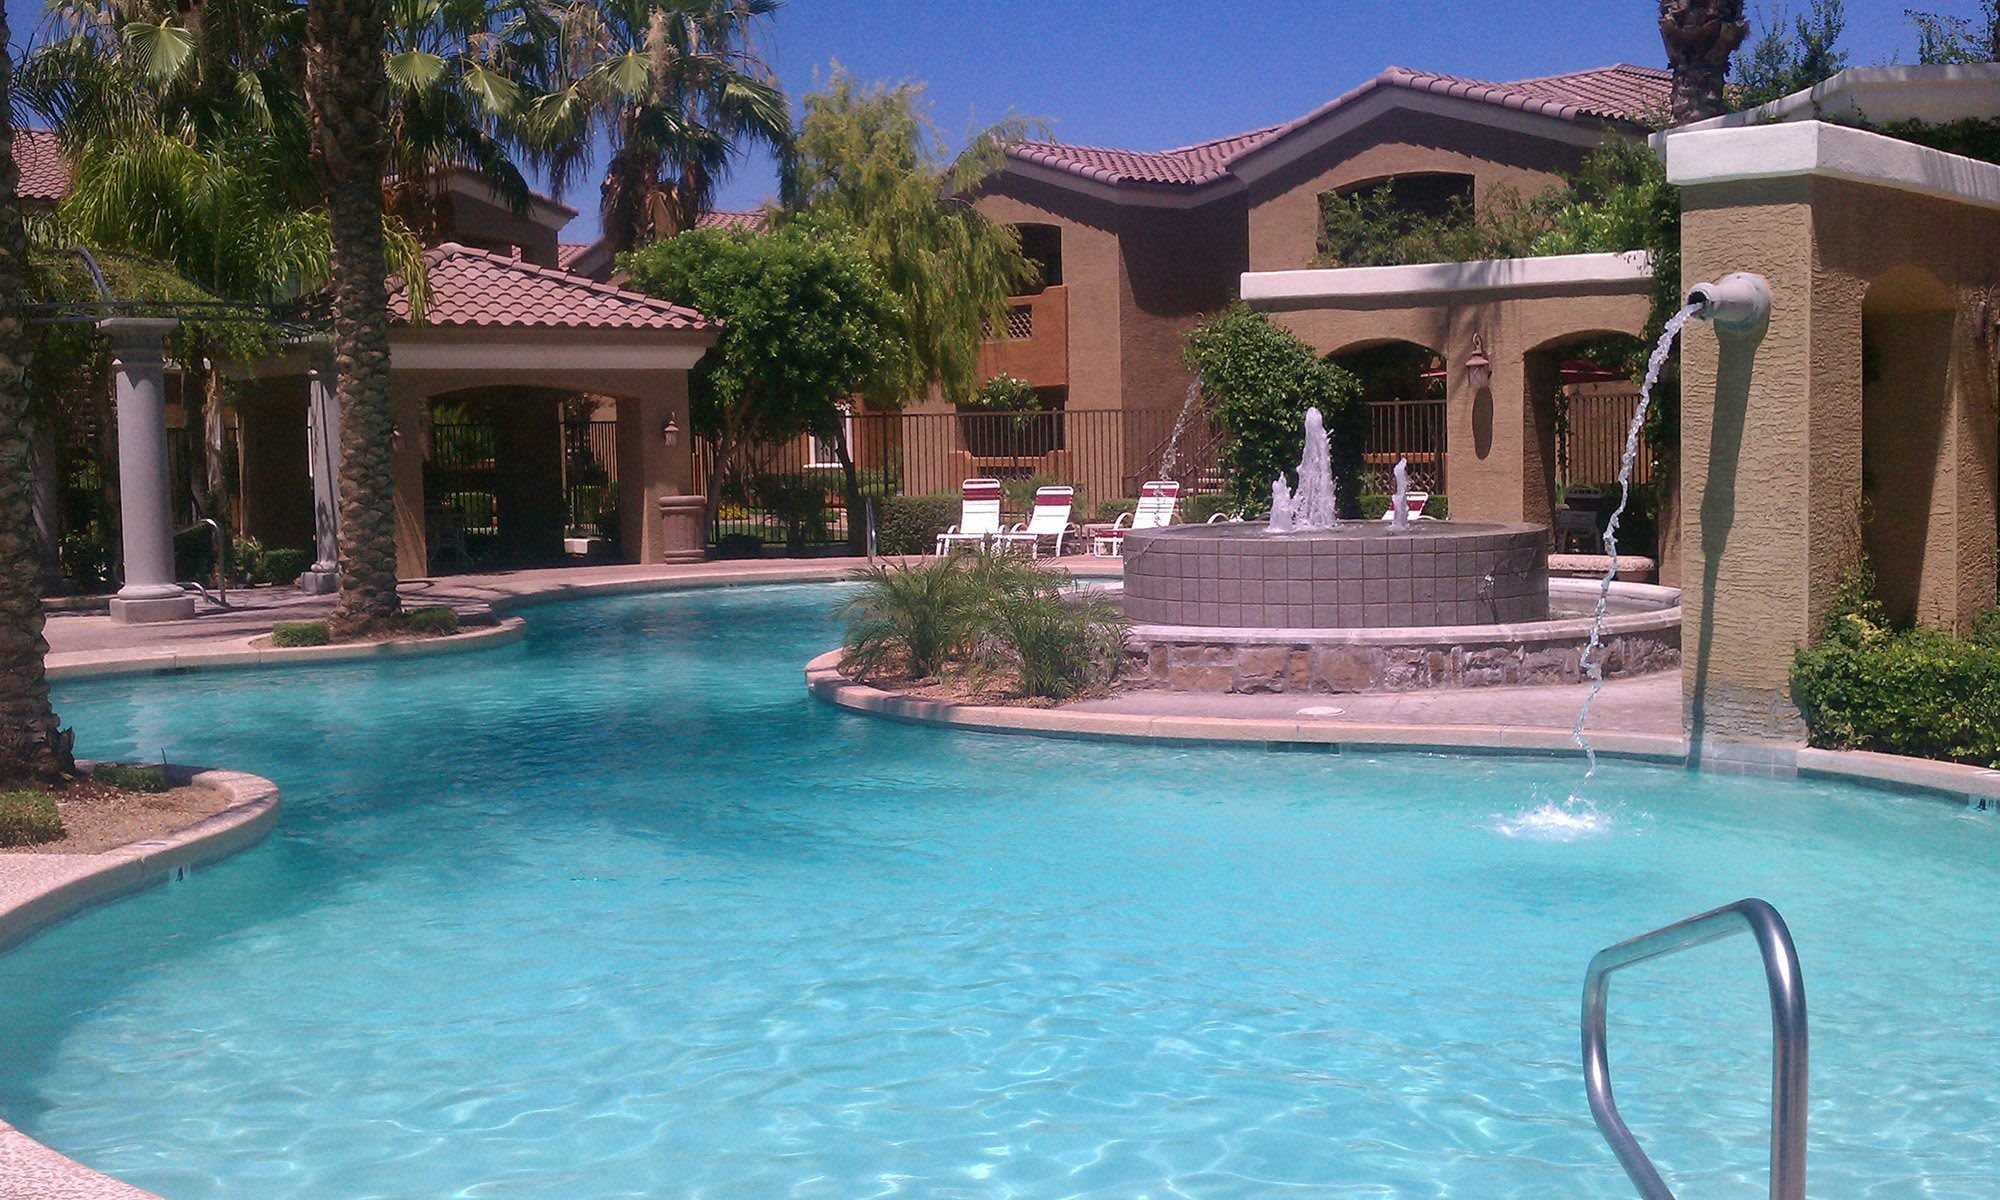 Pool & pool fountain at La Borgata Apartments in Surprise, AZ